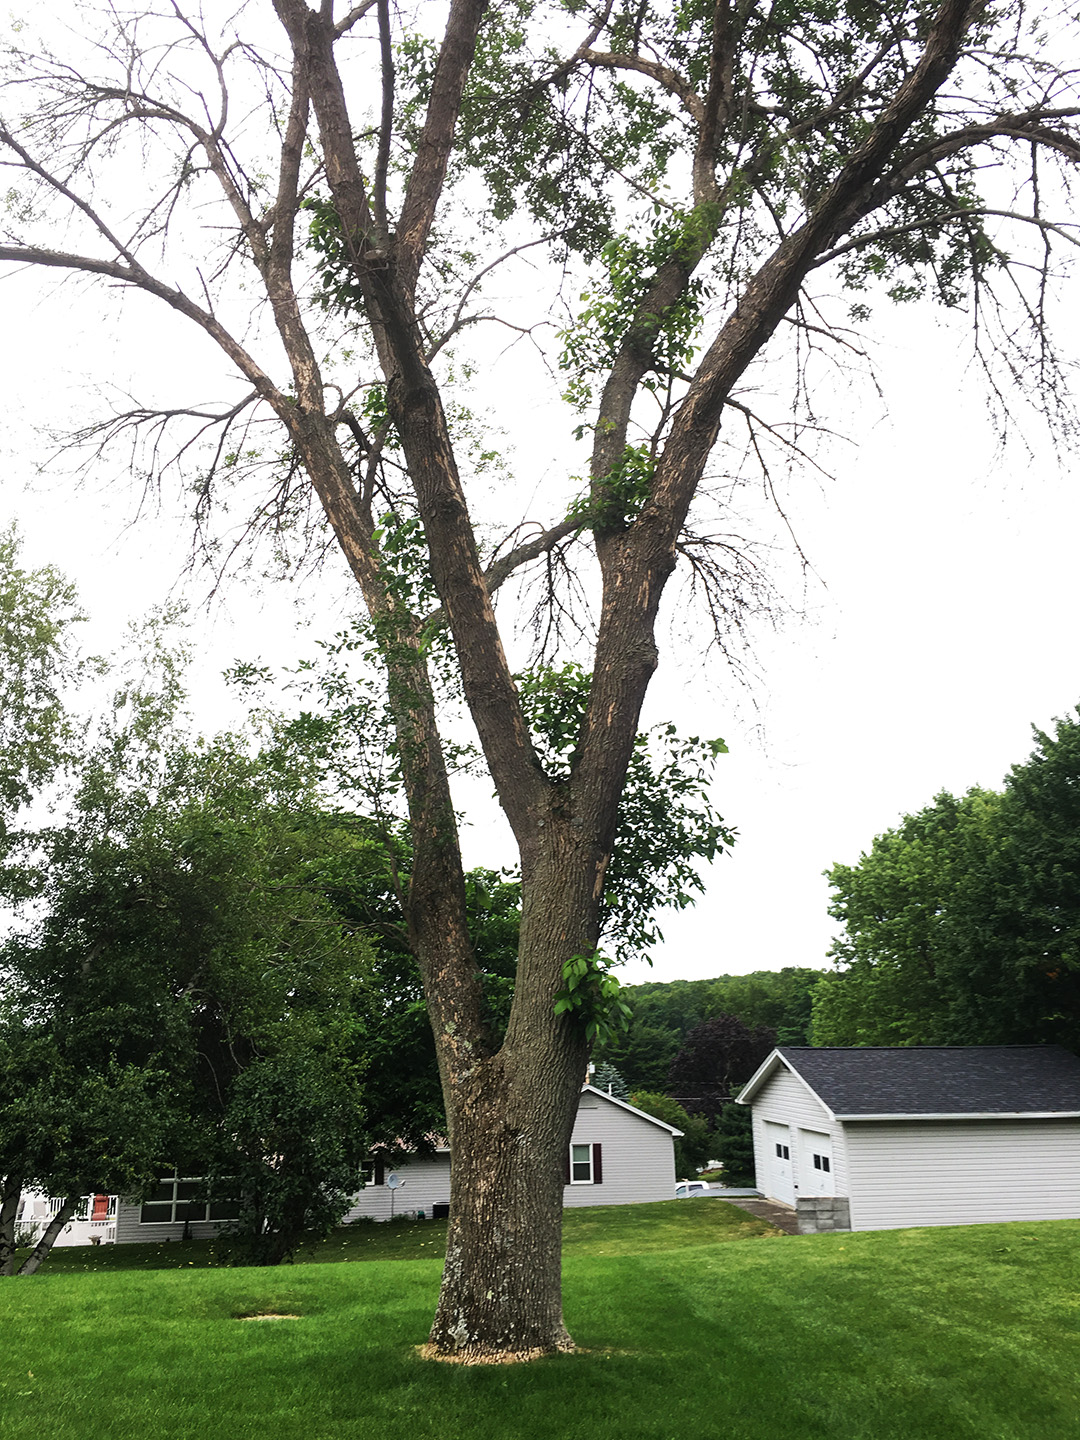 The tree from my brothers backyard that will soon live on as snowboards